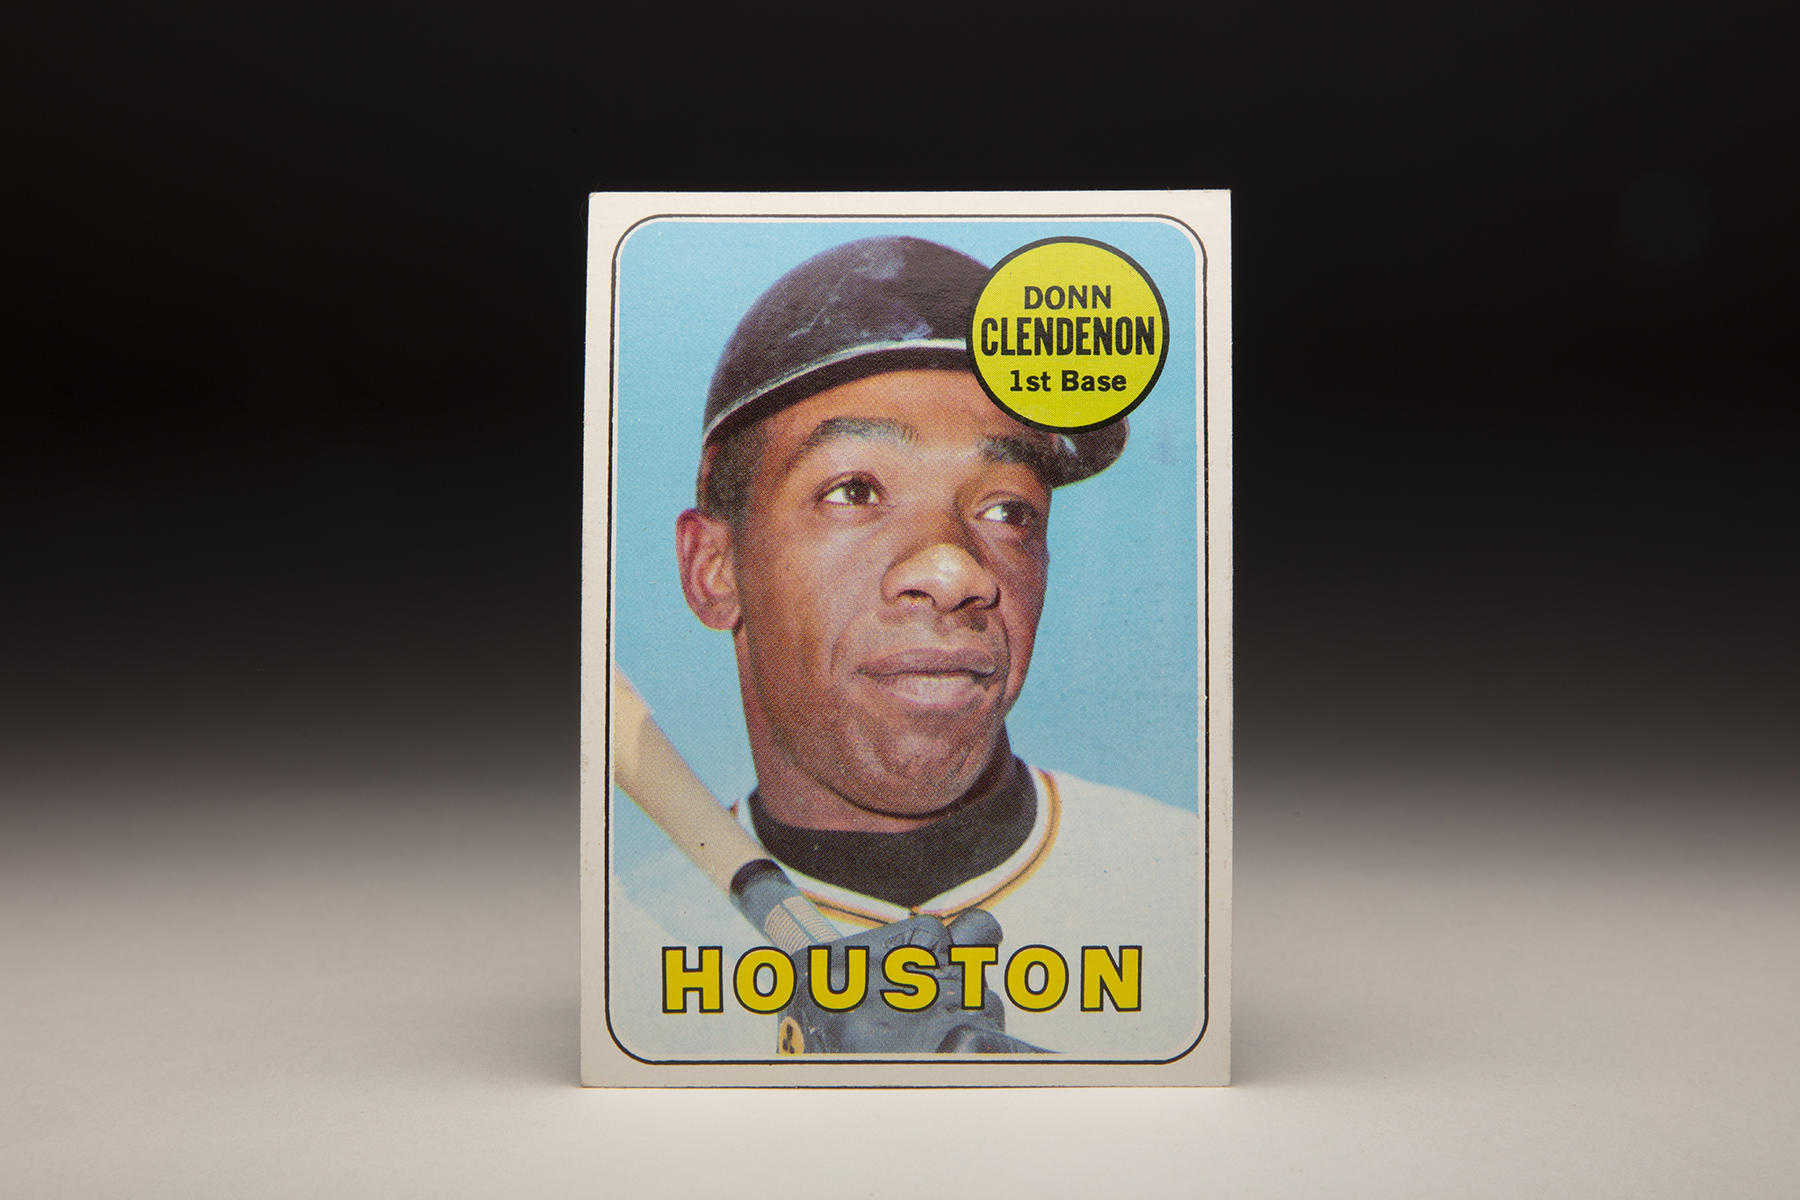 Donn Clendenon appeared on two versions of 1969 Topps cards, including this one that places him with the Houston franchise. (Milo Stewart Jr./National Baseball Hall of Fame and Museum)